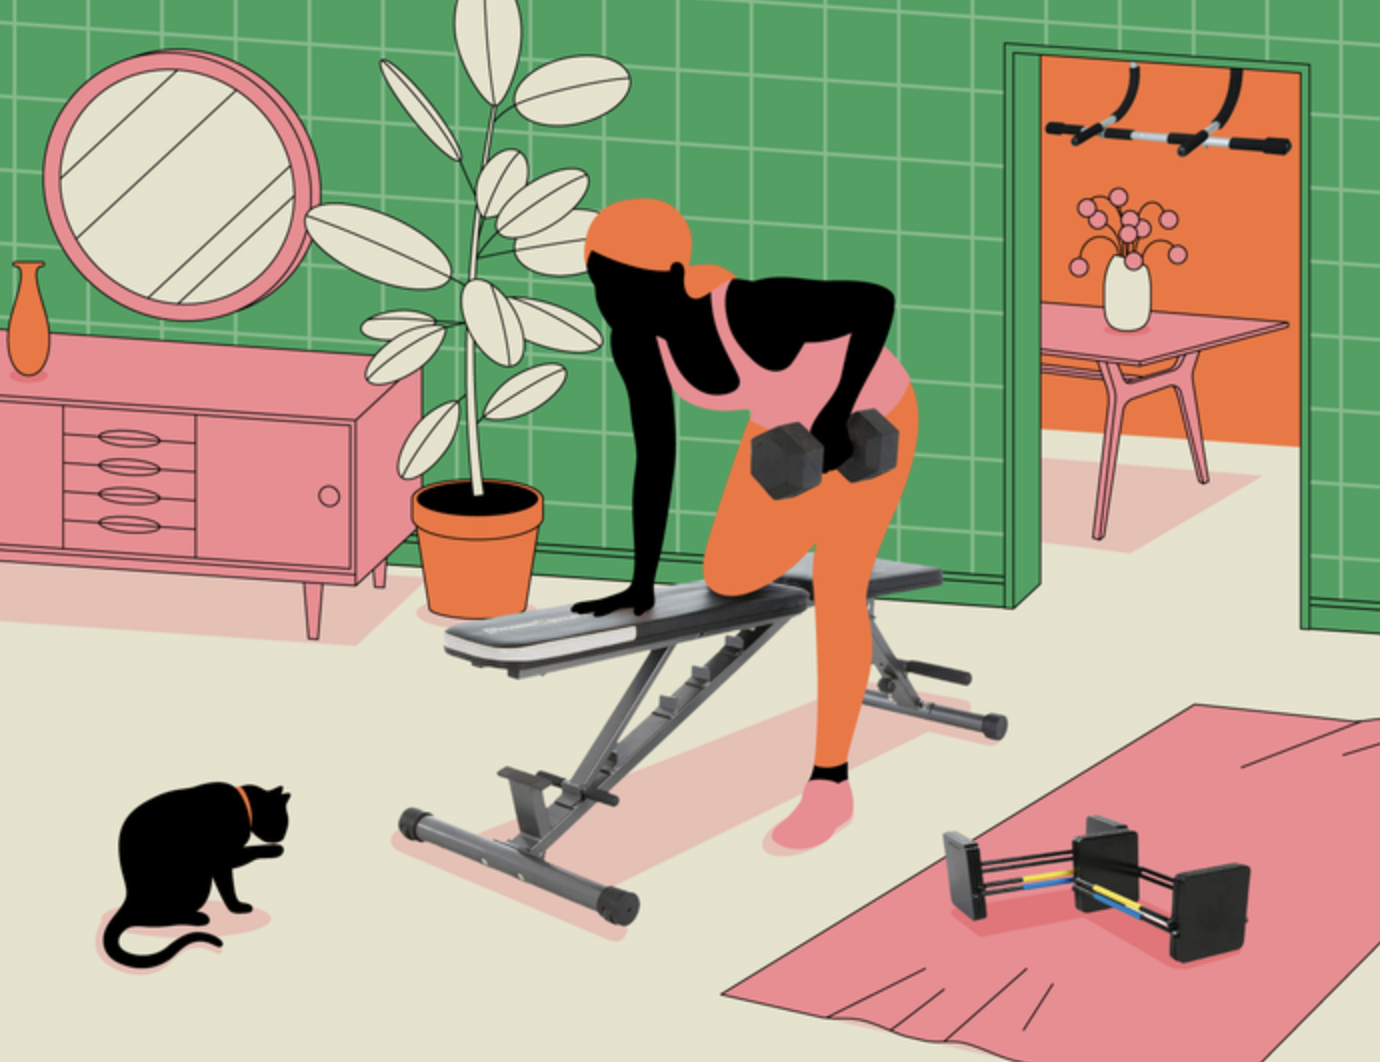 illustration of a person lifting a weight in a home with equipment around them